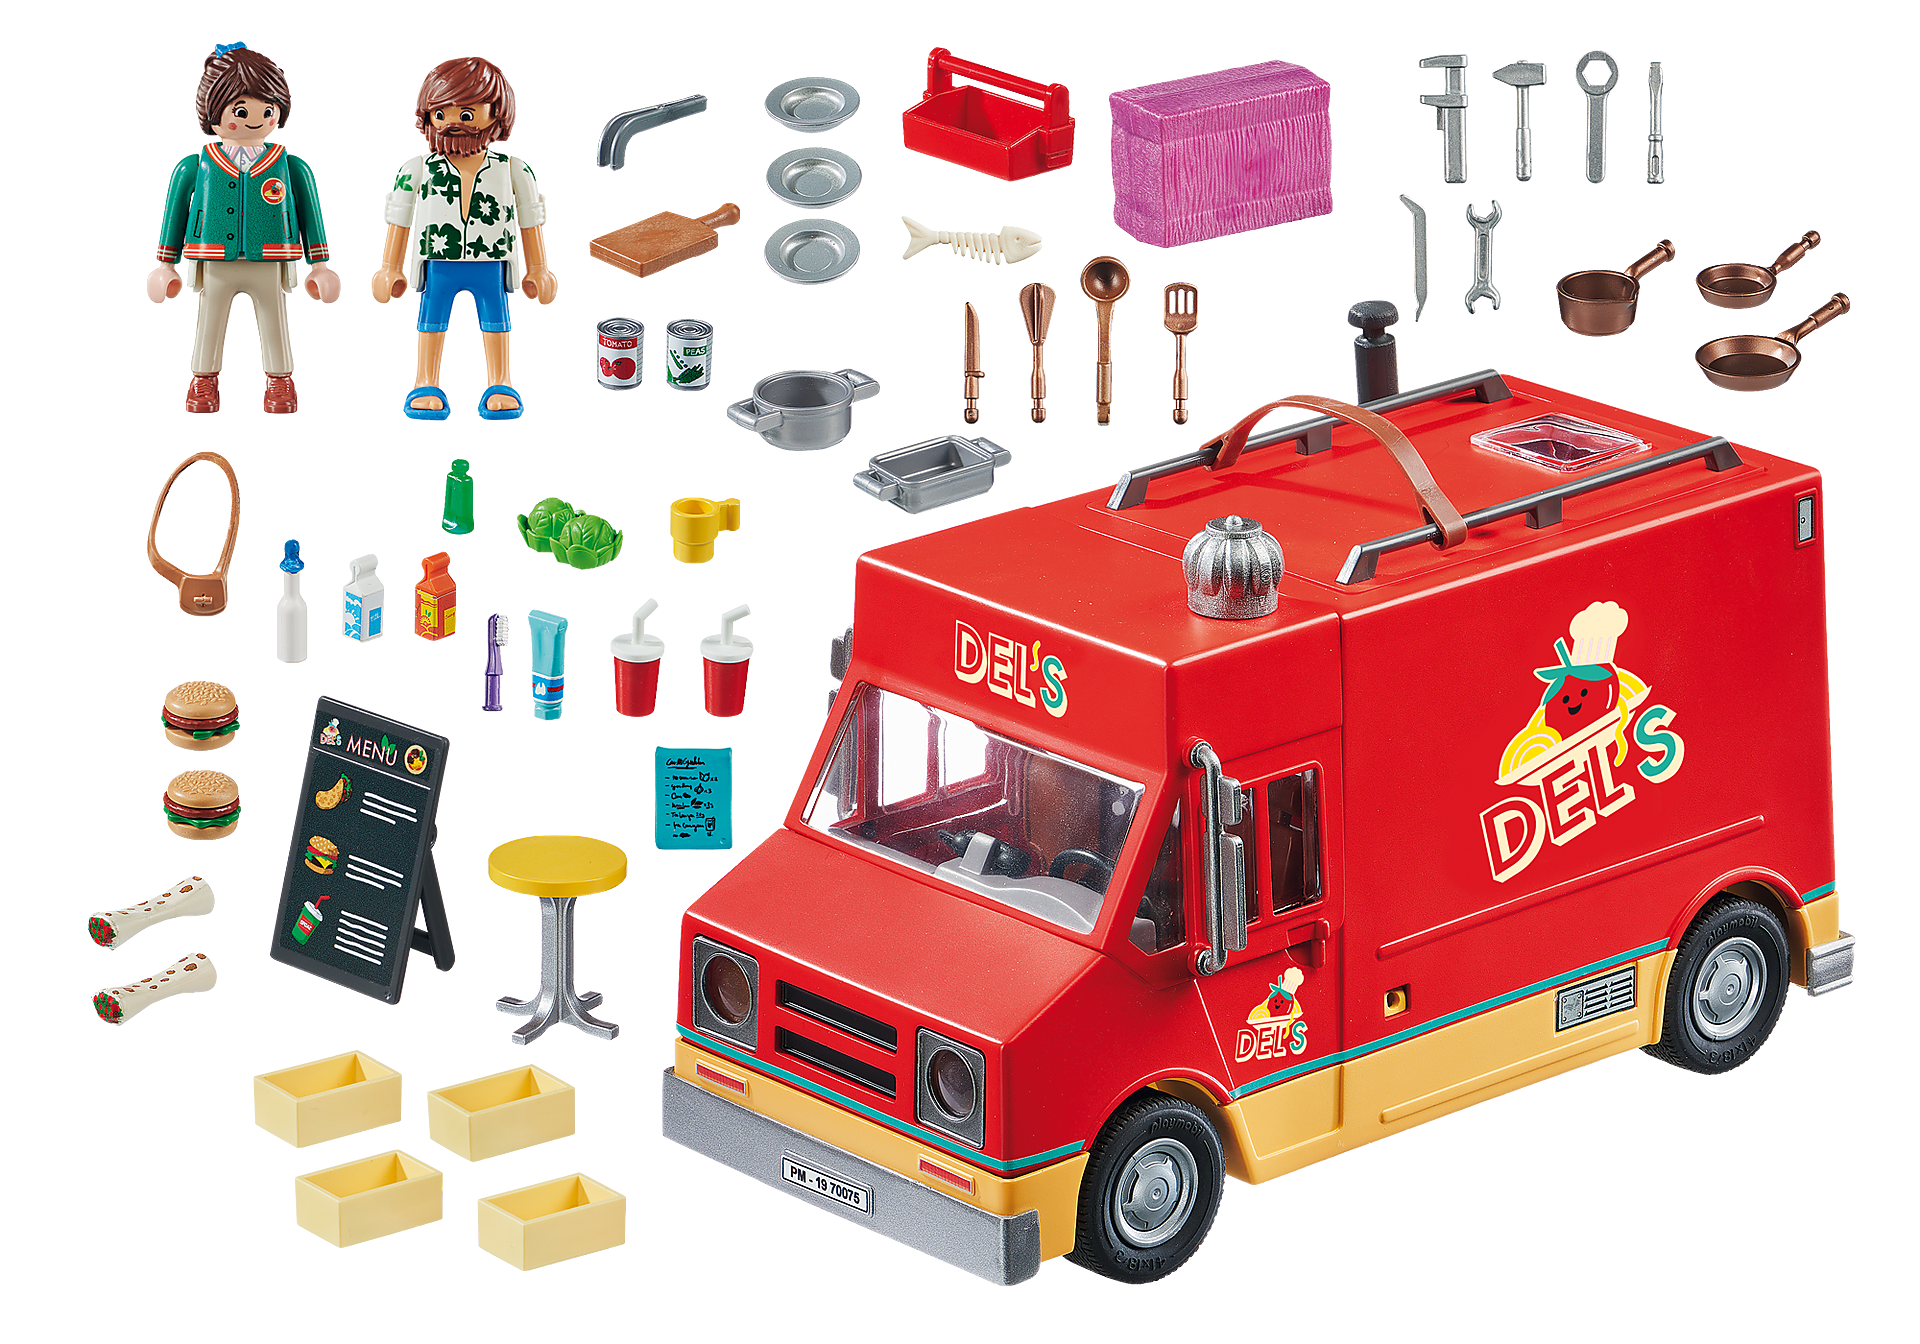 70075 PLAYMOBIL: THE MOVIE Dels Food Truck zoom image3